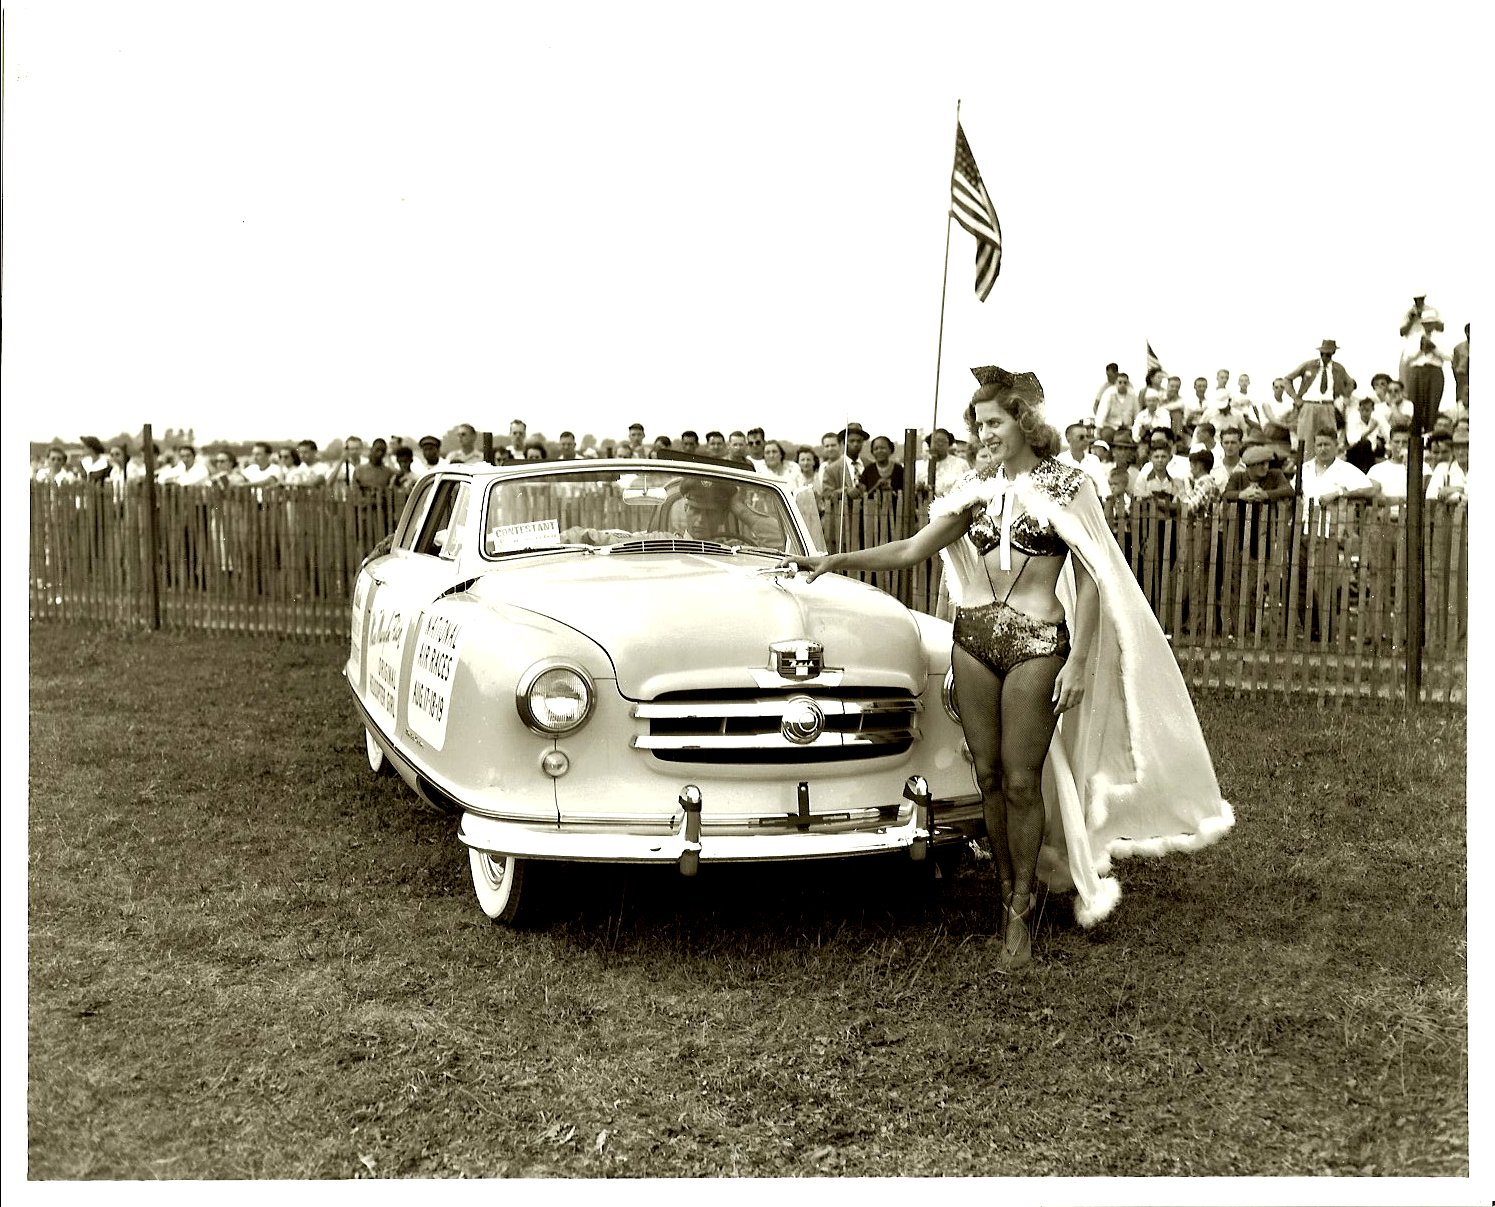 ca. 1950 Rambler Convertible Miss Marilyn Rich Original Helicopter Girl National Air Races Aug 7-8-9 NASH Dealers of Metro Detroit From a 10″x8″ Black & White negative